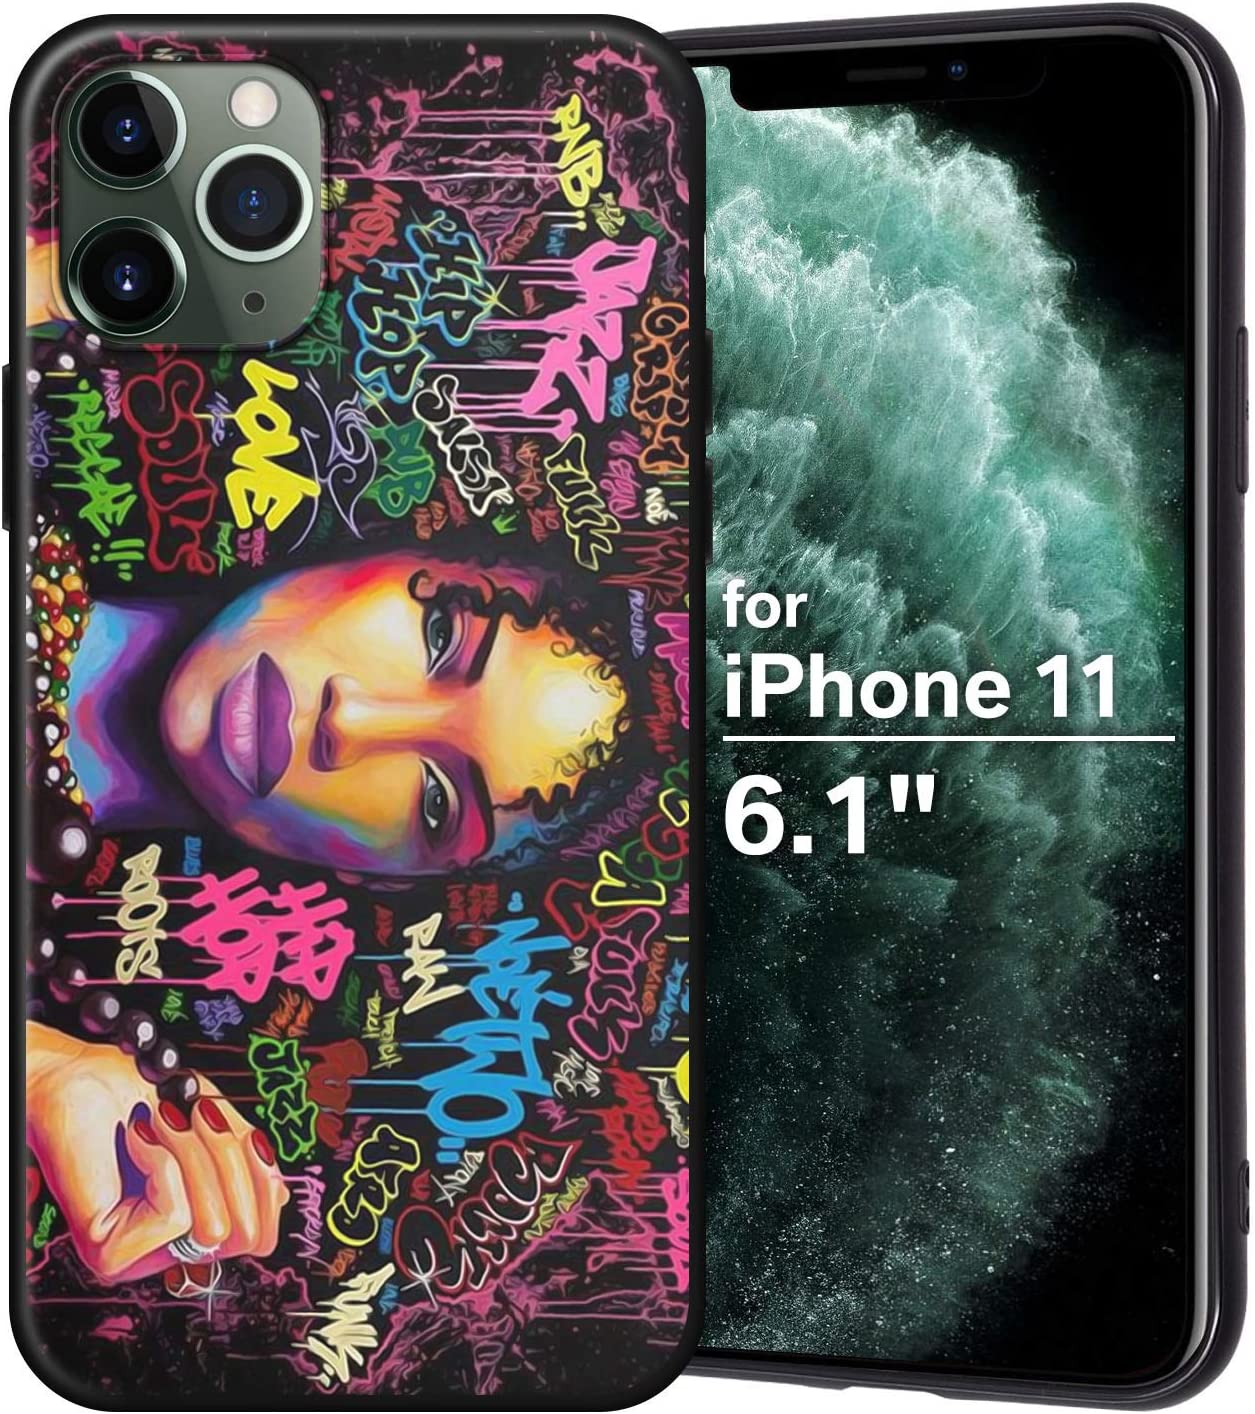 XIX iPhone 11 Case African American Afro Girls Women Slim Fit Shockproof Bumper Cell Phone Accessories Thin Soft Black TPU Protective Apple iPhone 11 Cases (04)